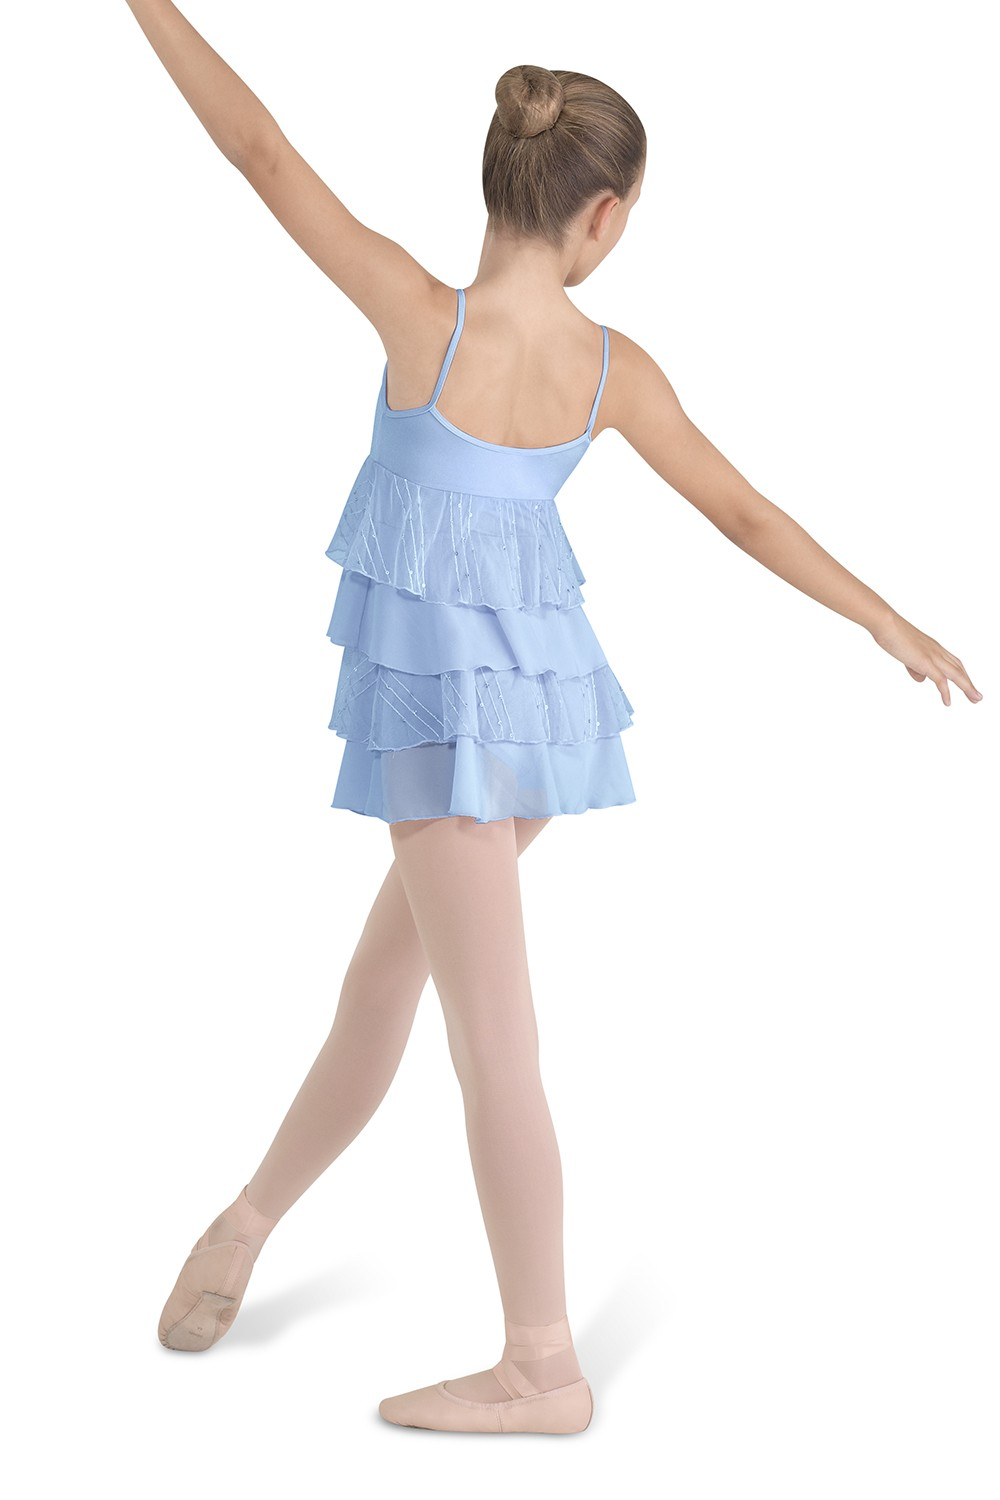 Four Tier Camisole Dress Children's Dance Leotards